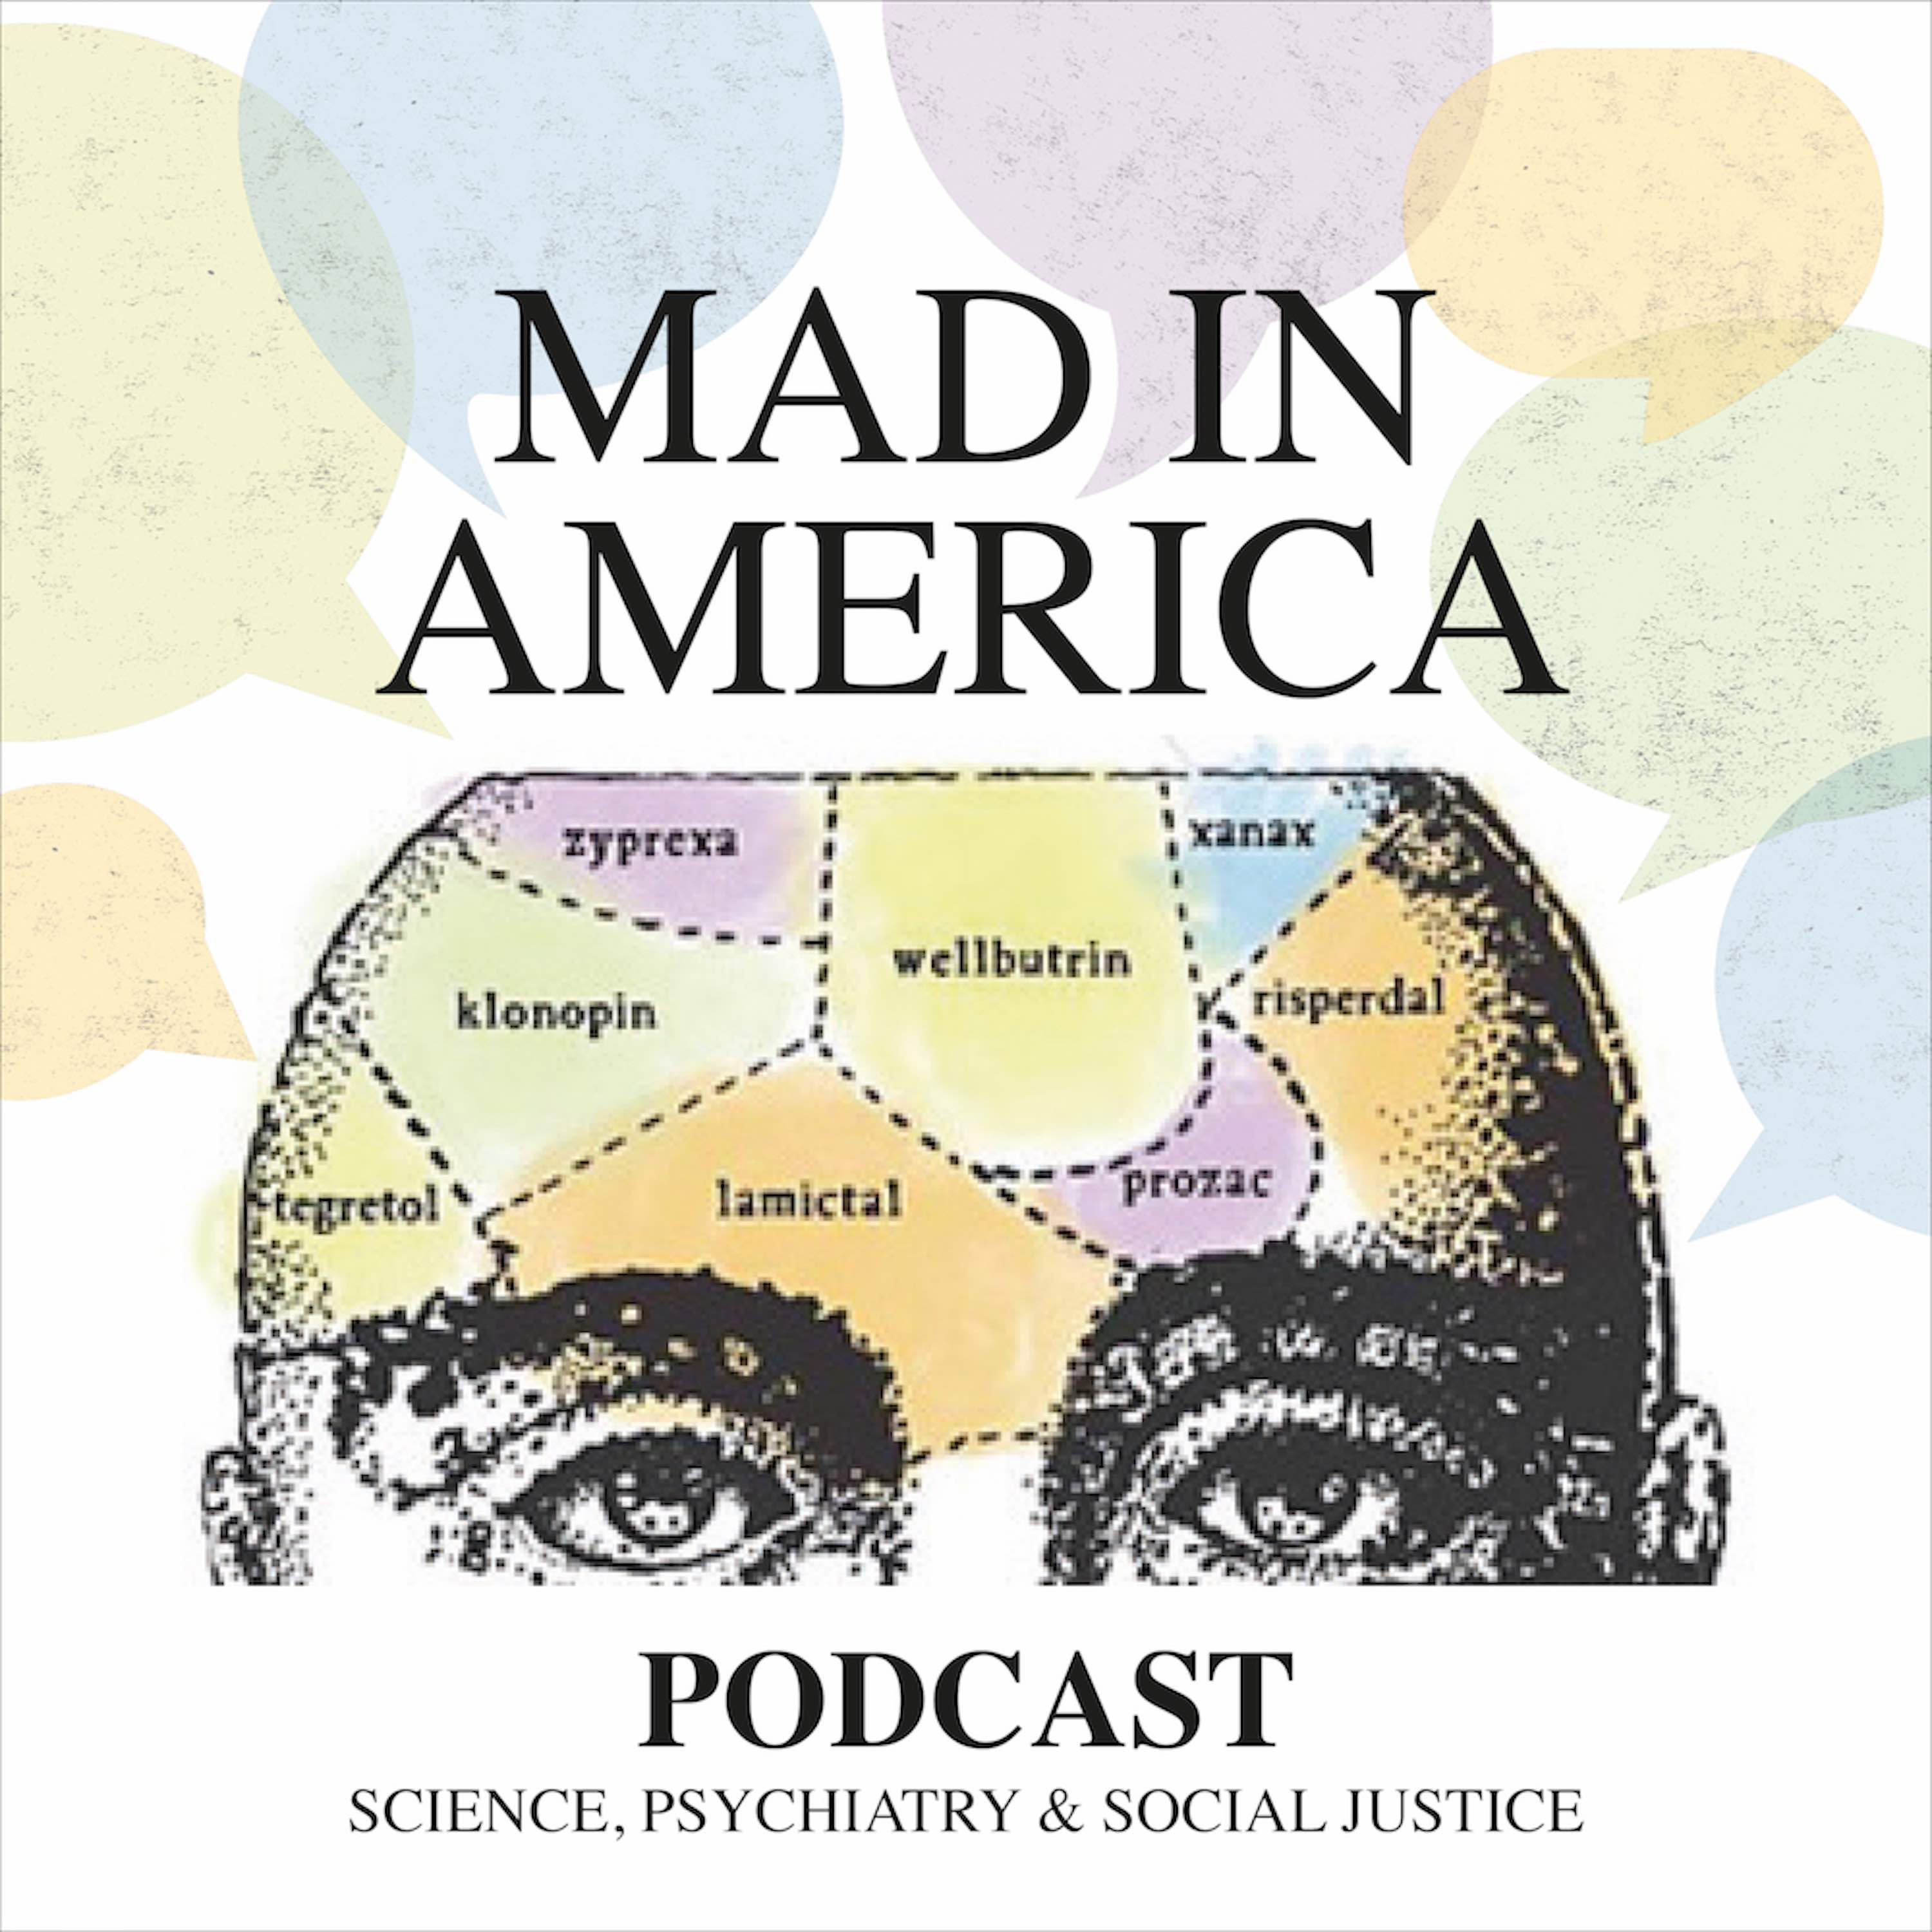 Mad in America: Rethinking Mental Health - Jennifer Bahr - Treating the Whole Person